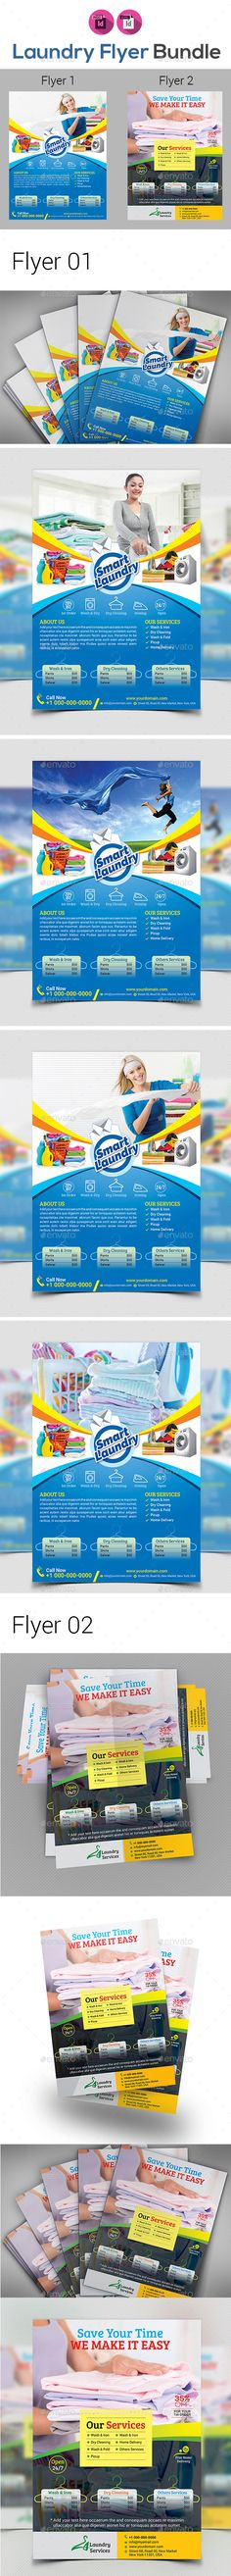 Laundry - The world's most private search engine Laundromat Business, Laundry Business, Cleaning Service Flyer, Dry Cleaning Services, Laundry Shop, Laundry Drying, Dry Cleaning Business, Promotional Flyers, Stationery Store